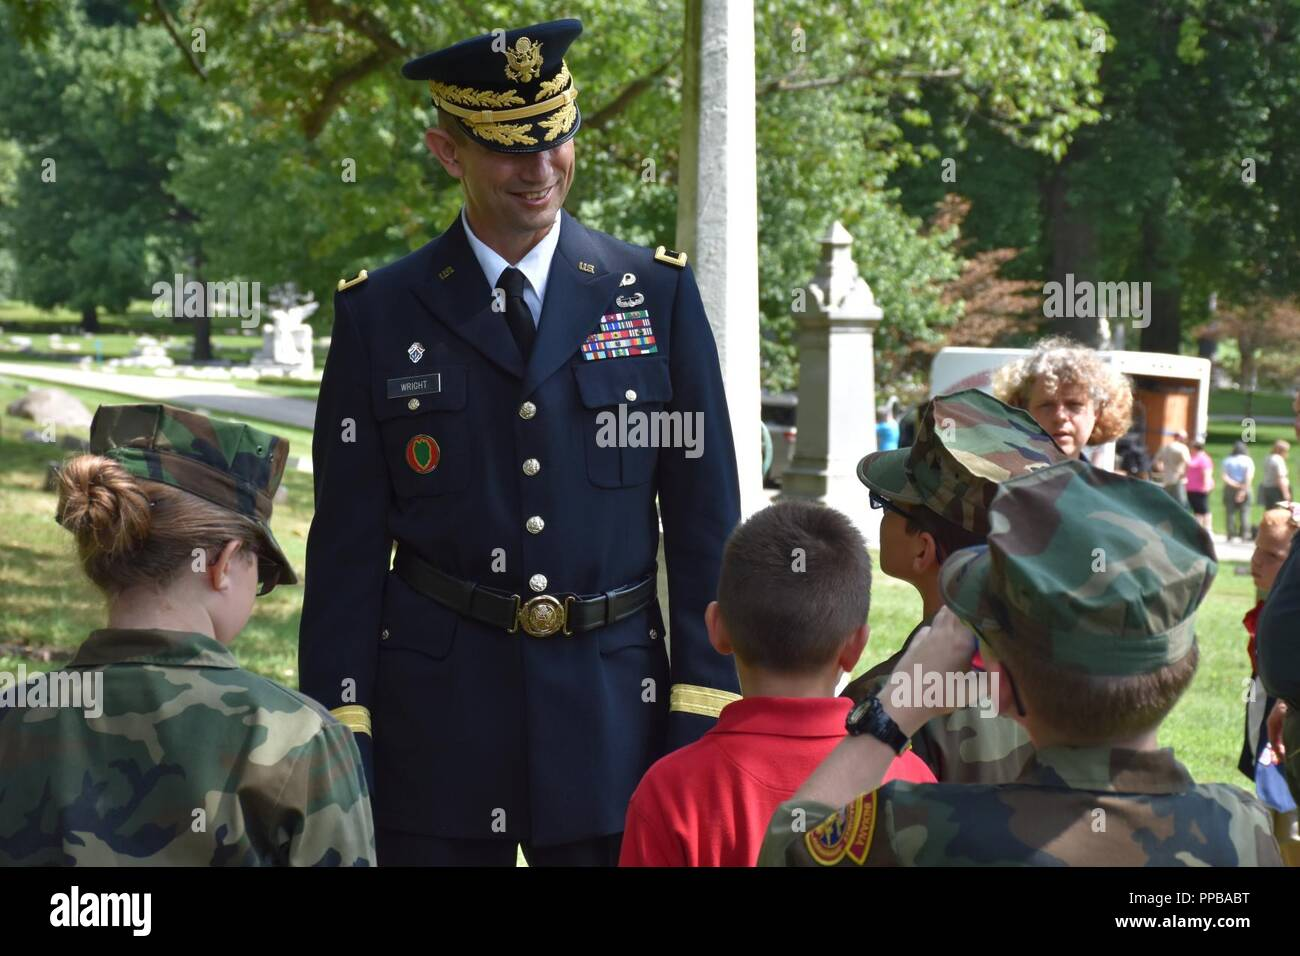 Brigadier Gen. Tony L. Wright, 88th Readiness Division deputy commanding general, answers questions from members of the Central Indiana Young Marines following a wreath laying ceremony for President Benjamin Harrison at Crown Hill Cemetery, in Indianapolis, on Aug. 18, to commemorate the Hoosier President's 185th birthday. (US Army Stock Photo